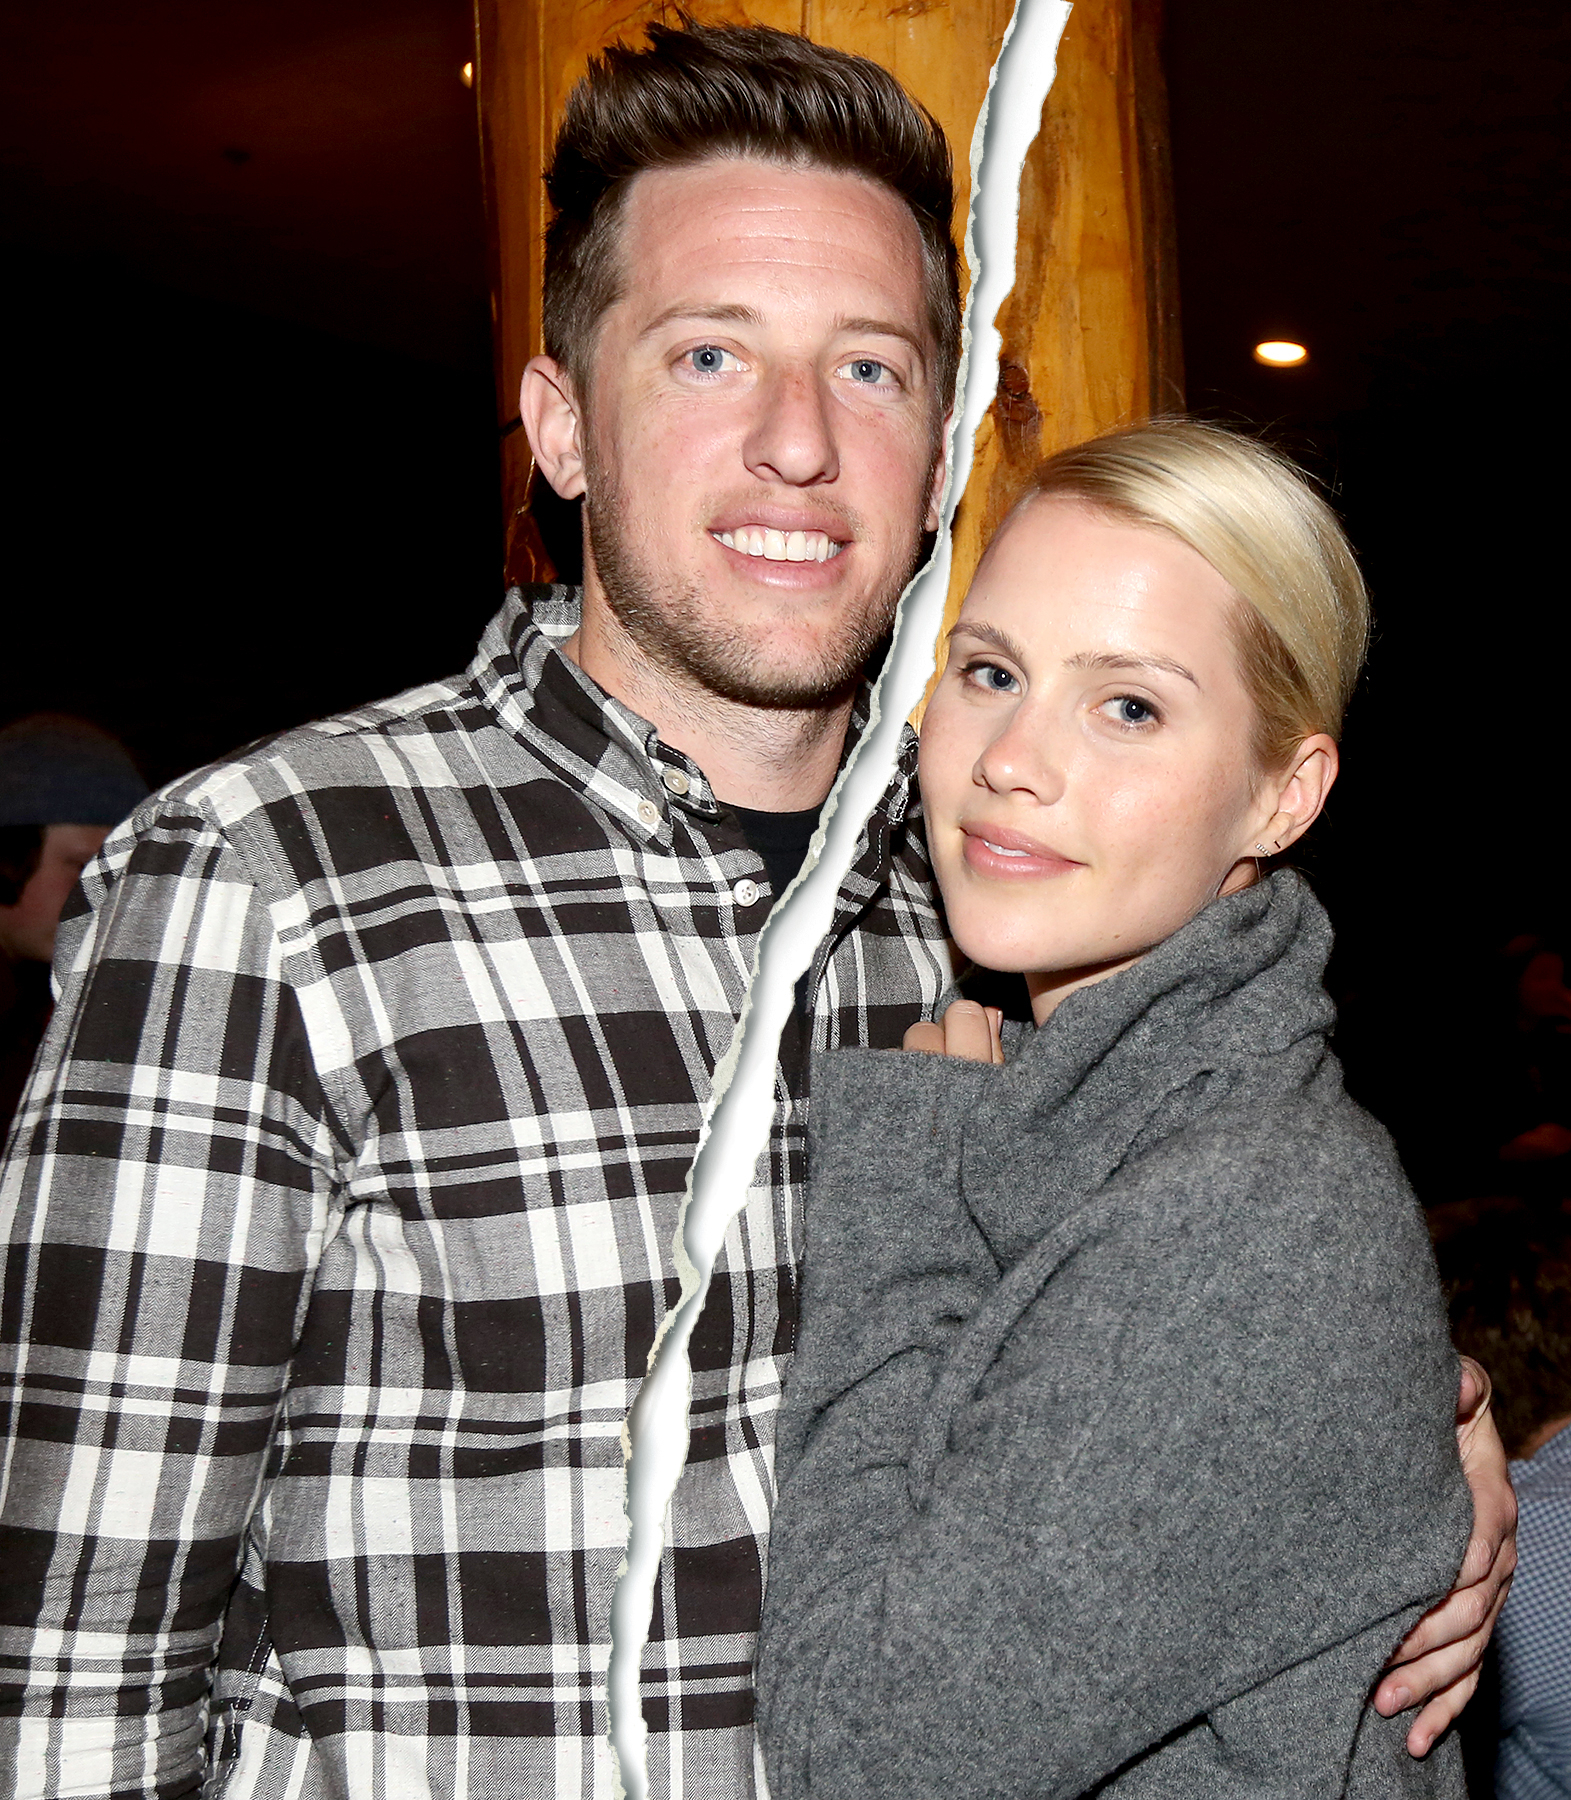 Matt Kaplan and Claire Holt attend Operation Smile's 4th Annual Celebrity Ski & Smile Challenge VIP Dinner on March 14, 2015 in Park City, Utah.